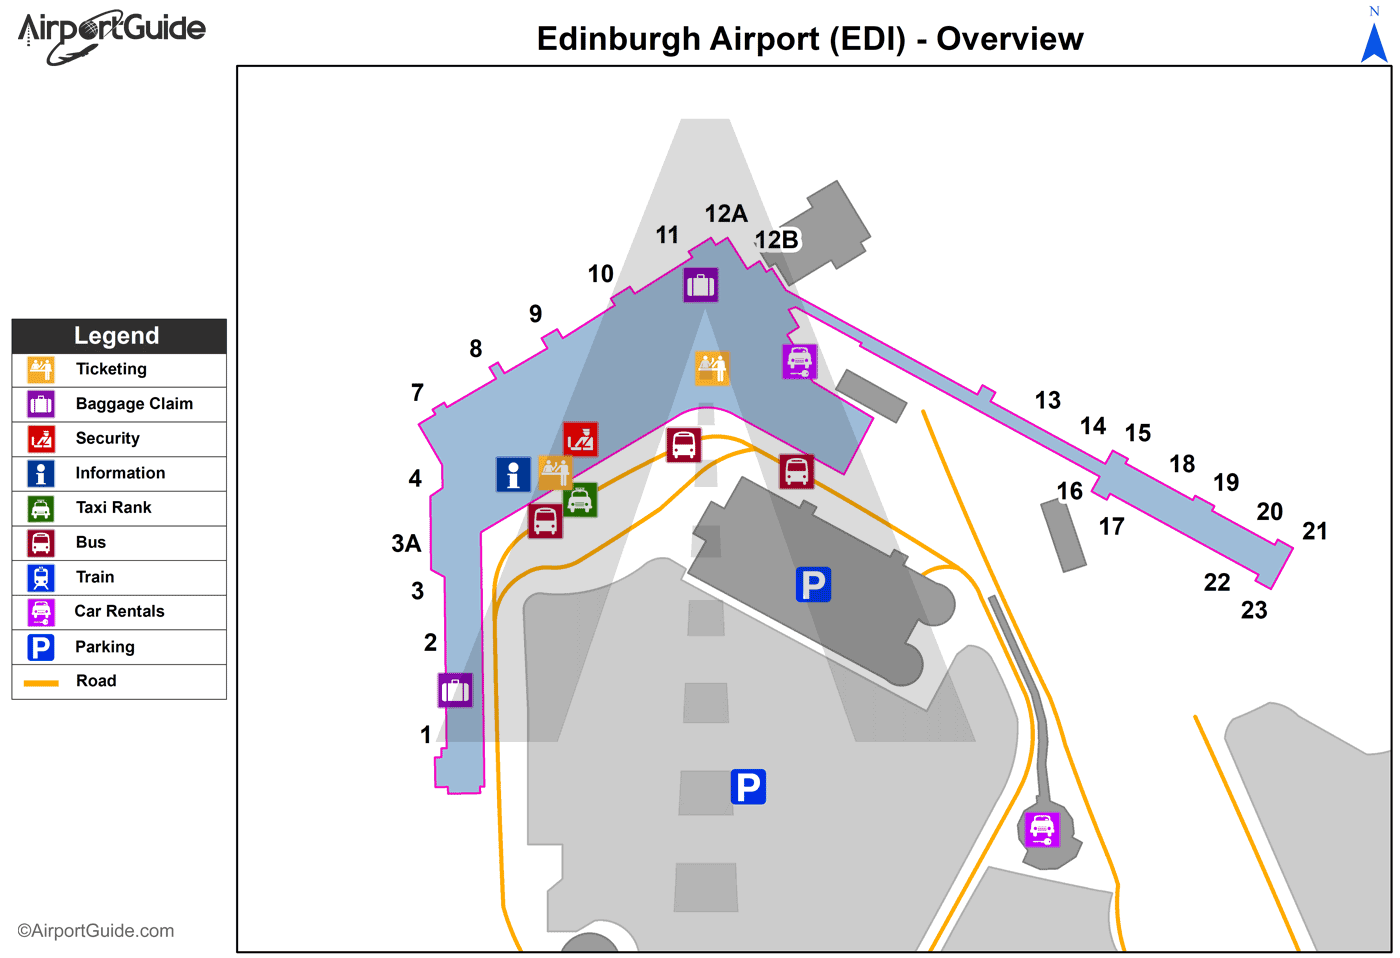 Edinburgh - Edinburgh (EDI) Airport Terminal Map - Overview